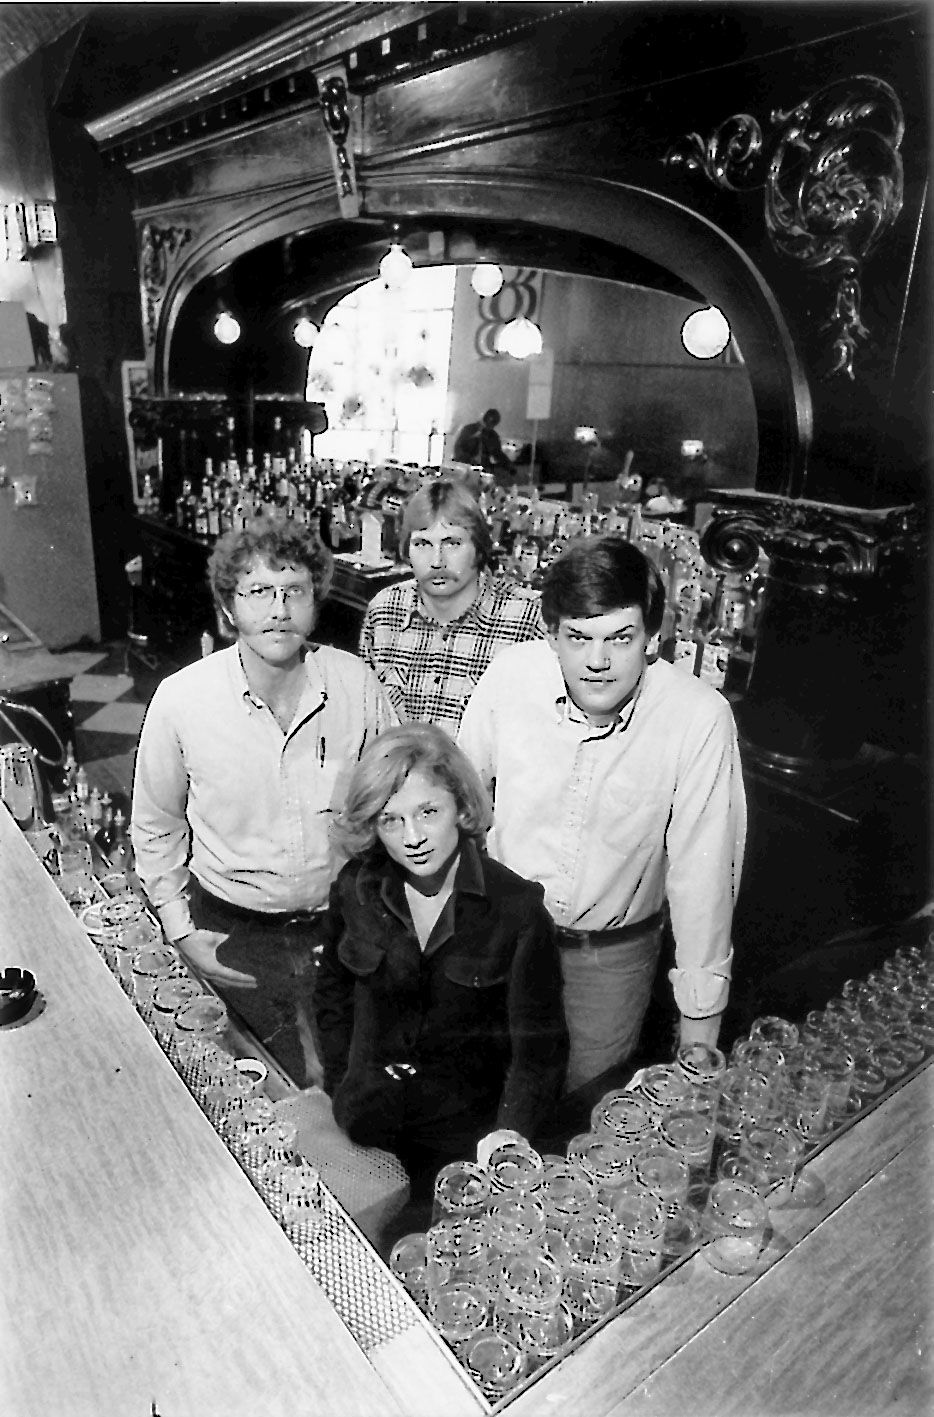 In 1998, reporters Pamela Zekman (front), Zay N. Smith (right), William Recktenwald (left) and Jeff Allen, who posed as the owner of the Mirage tavern.